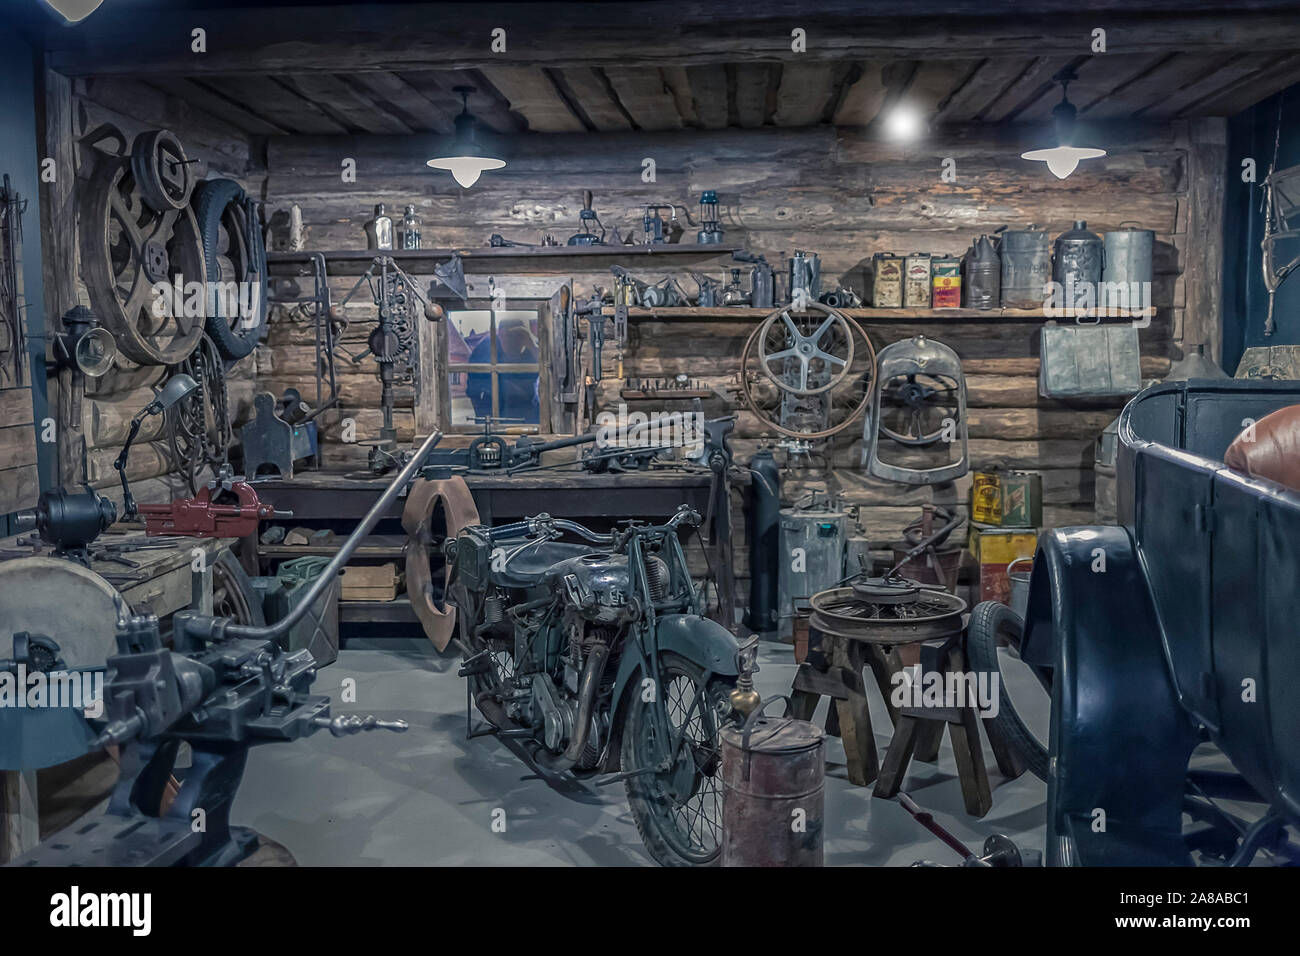 Interior Of An Old Workshop Small Garage Equipment Stock Photo Alamy